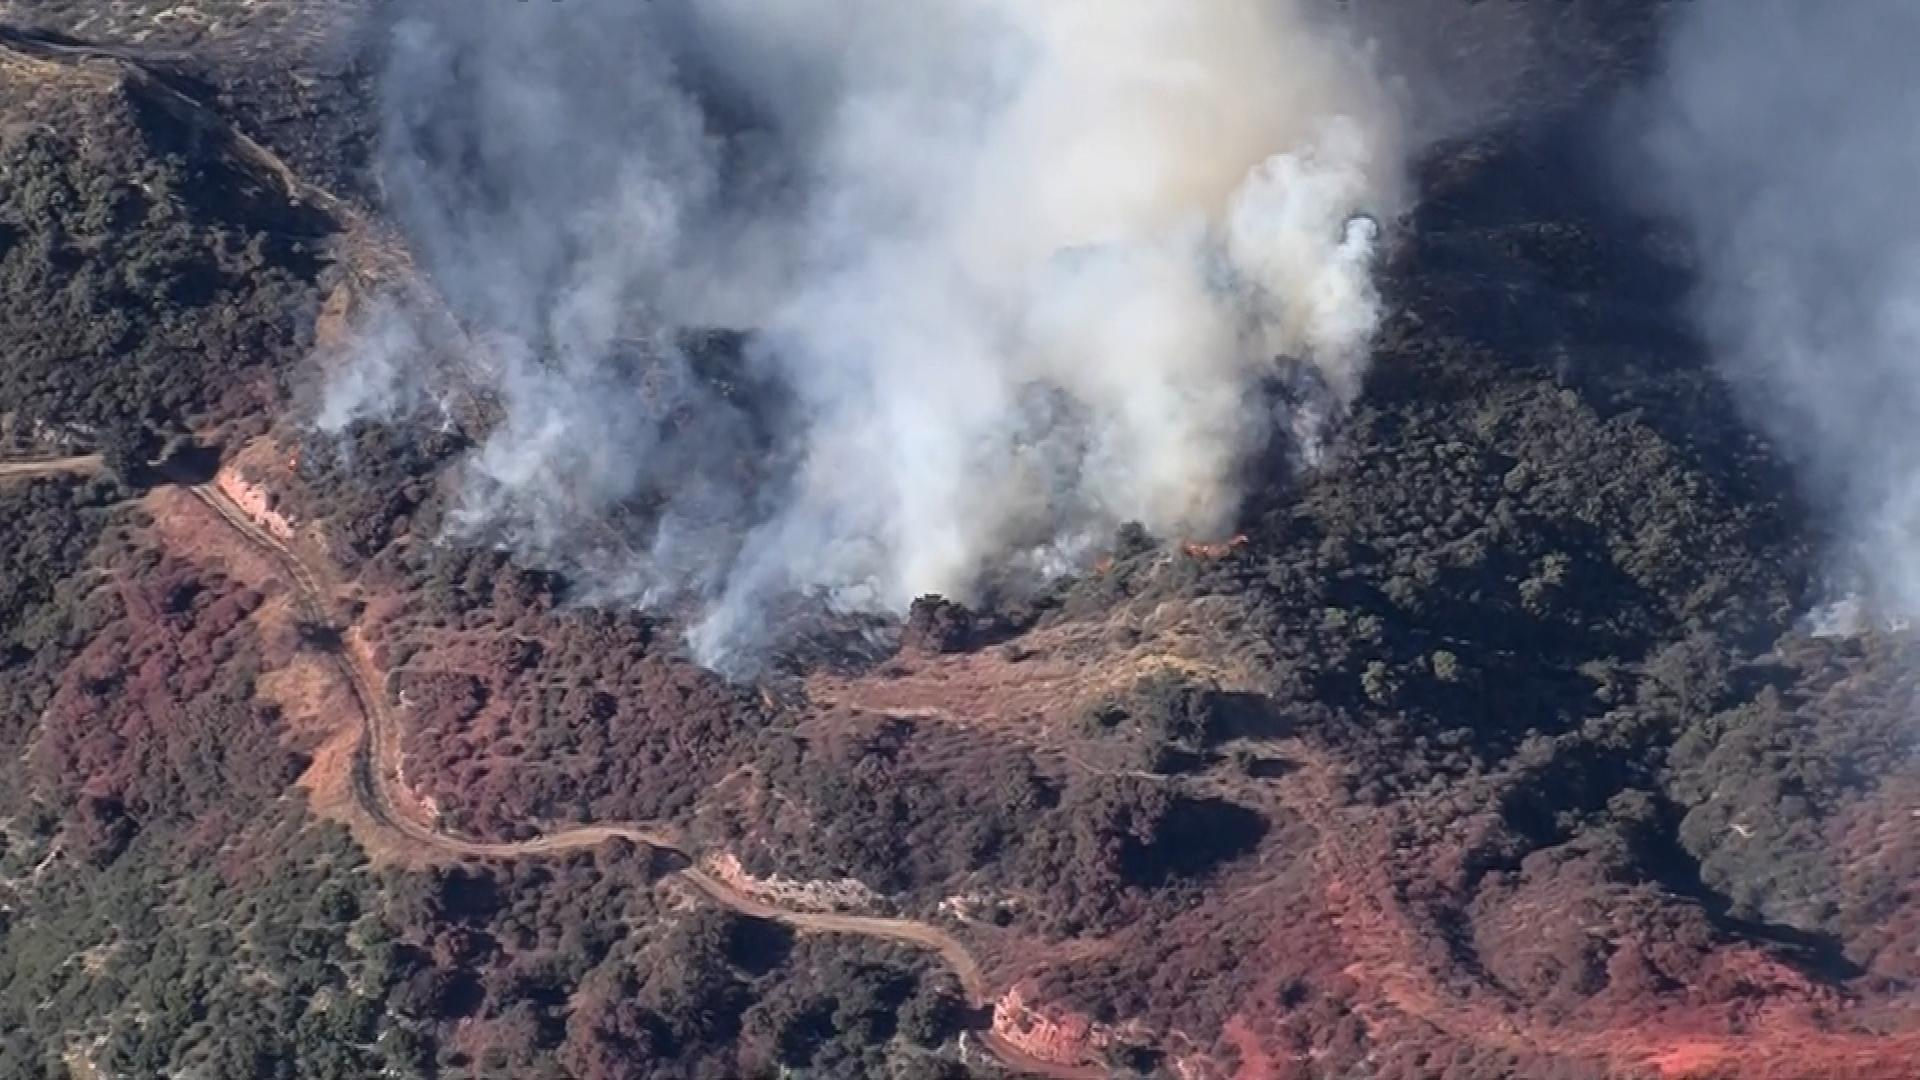 Los Angeles wildfire spreads to 4,700 acres, forcing evacuations in San Fernando Valley